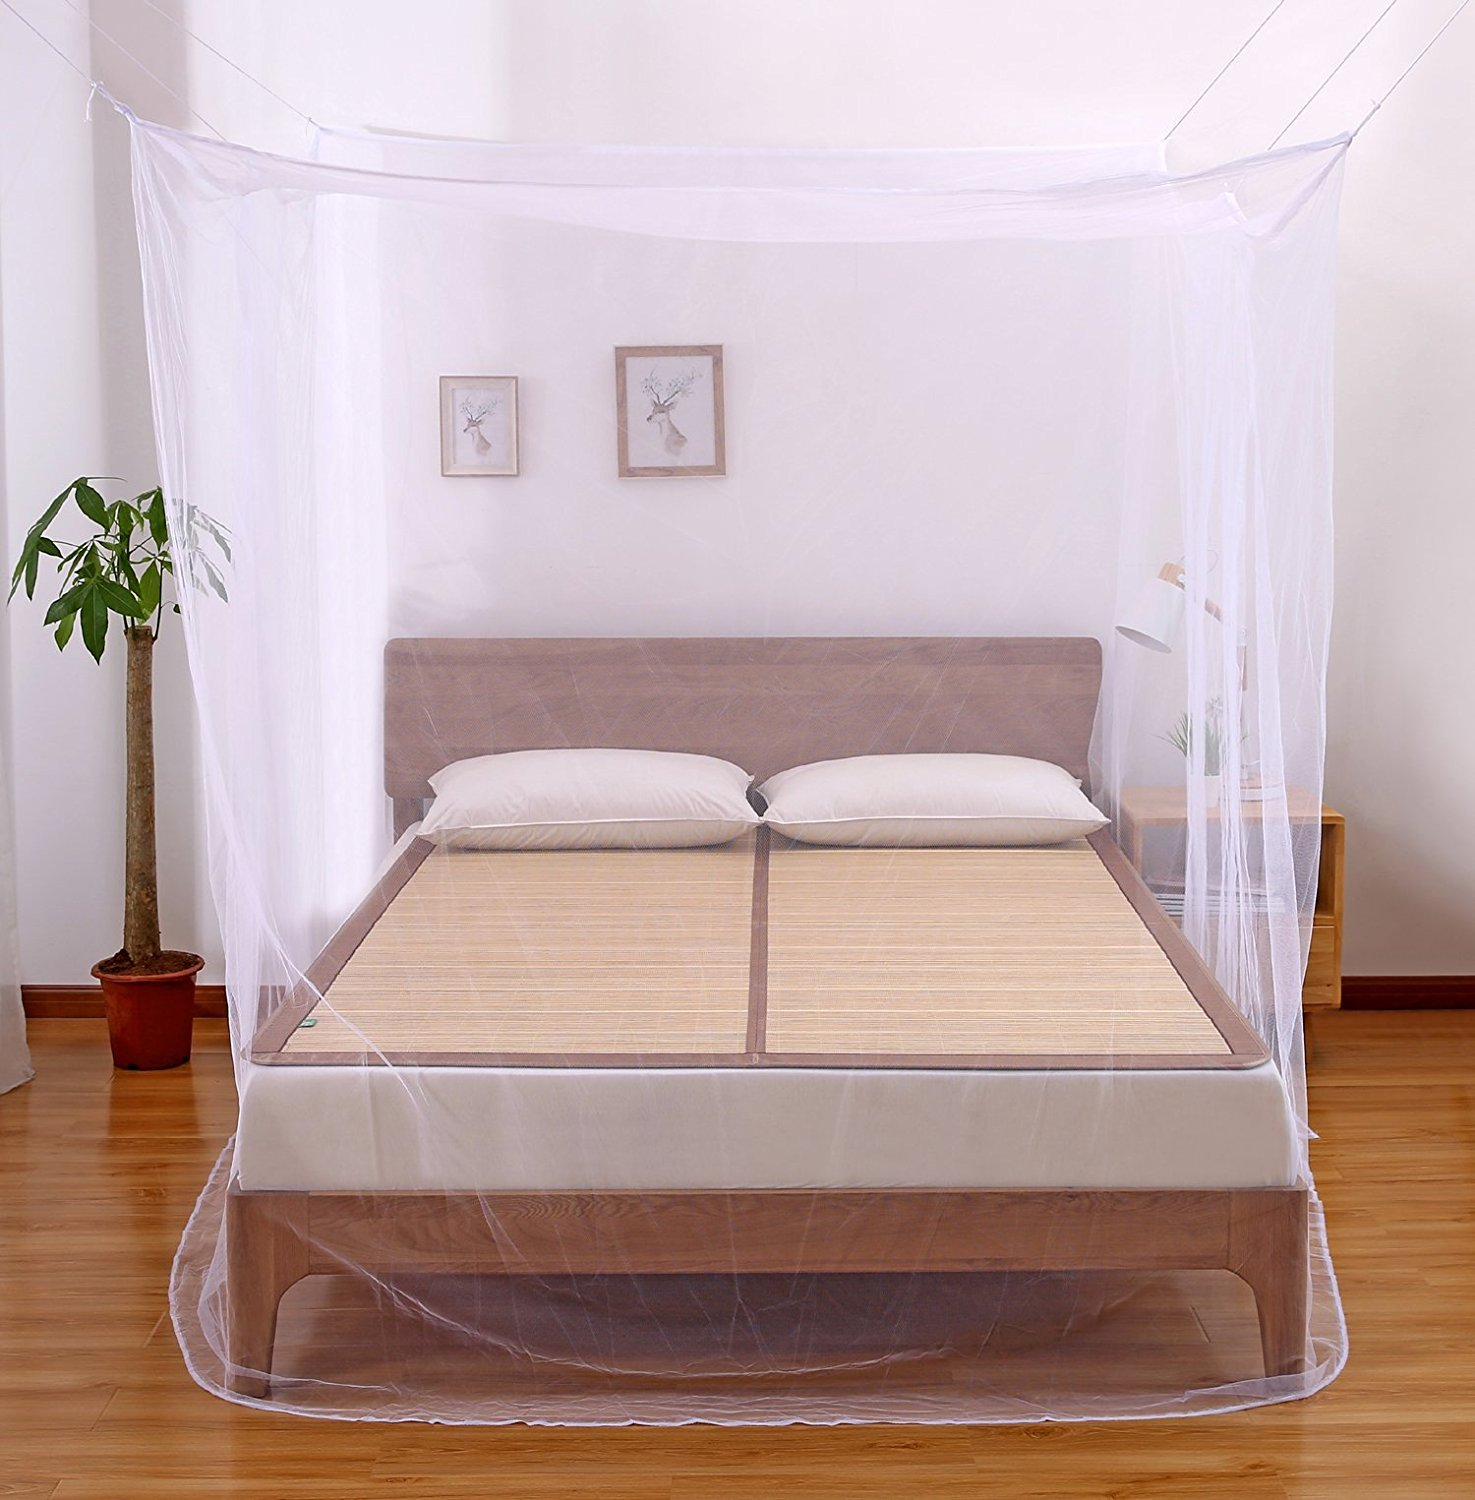 Faswin Rectangular Fine Mesh Mosquito Net for Double Bed, Two Openings Insect Protection Repellent, Including Hanging Kit and Carry Bag, Perfect for Indoors and Outdoors CA-MosquitoNet-Rectangular